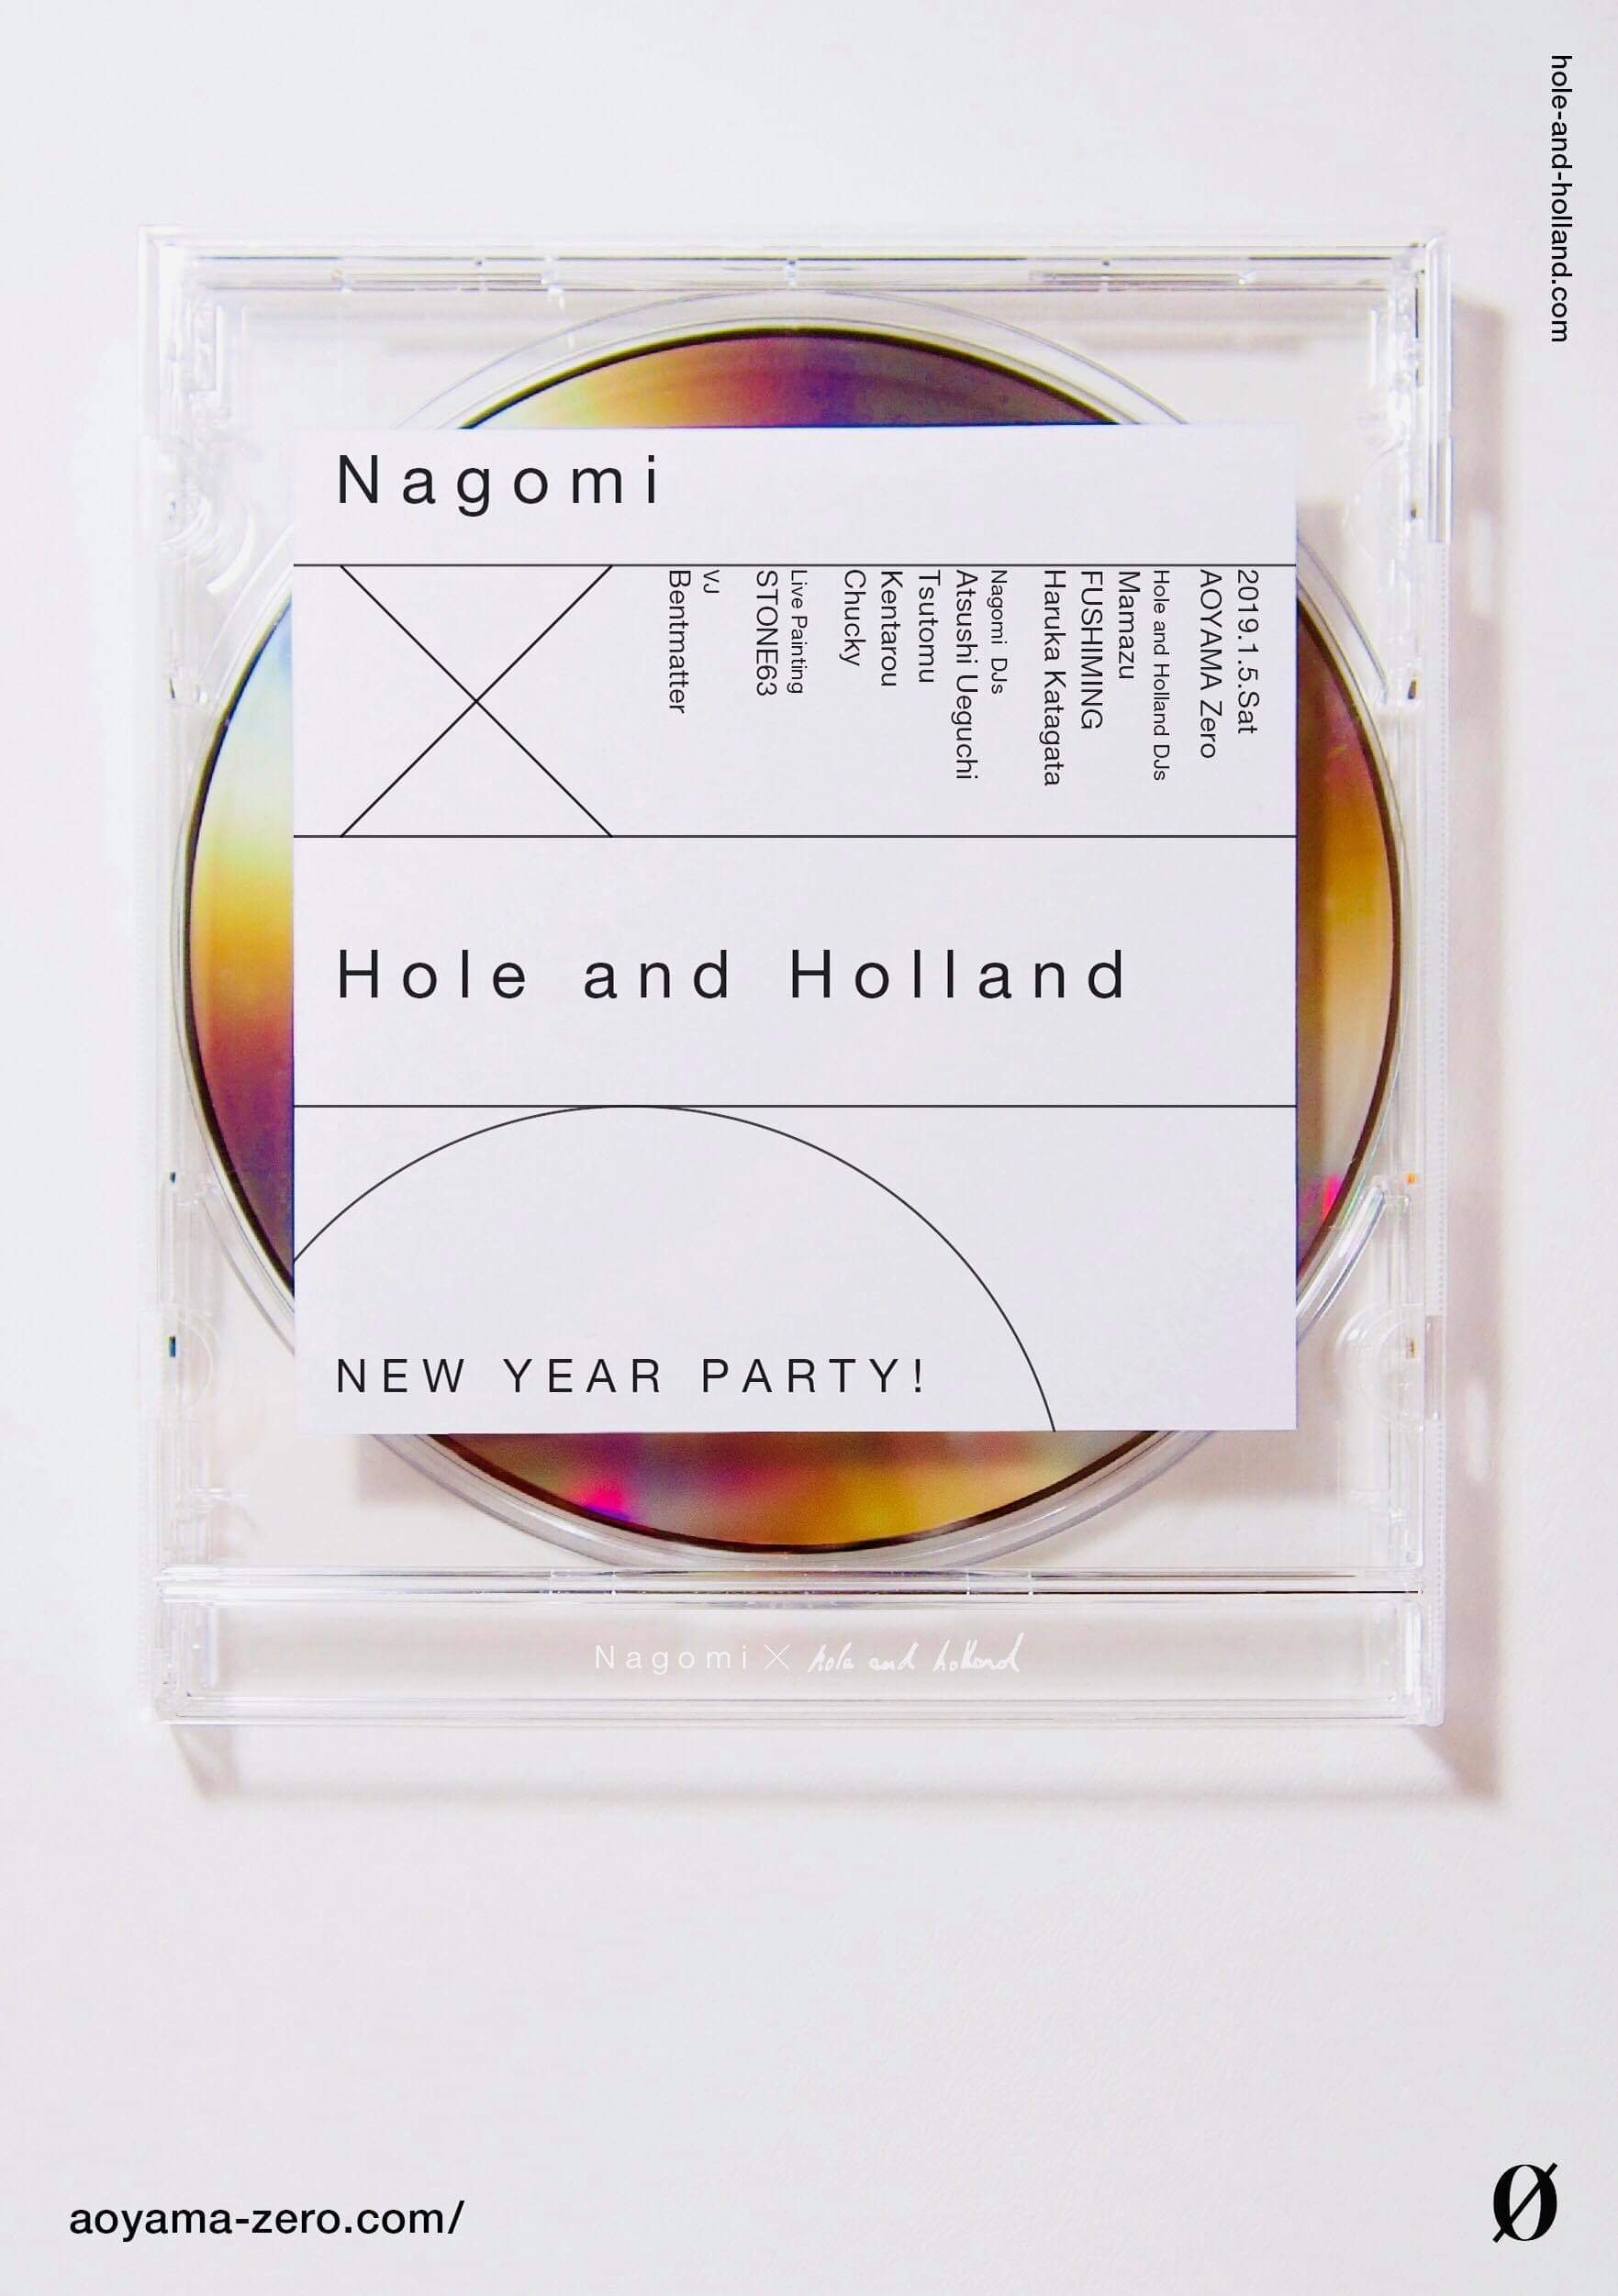 nagomi x Hole and Holland New Year Party